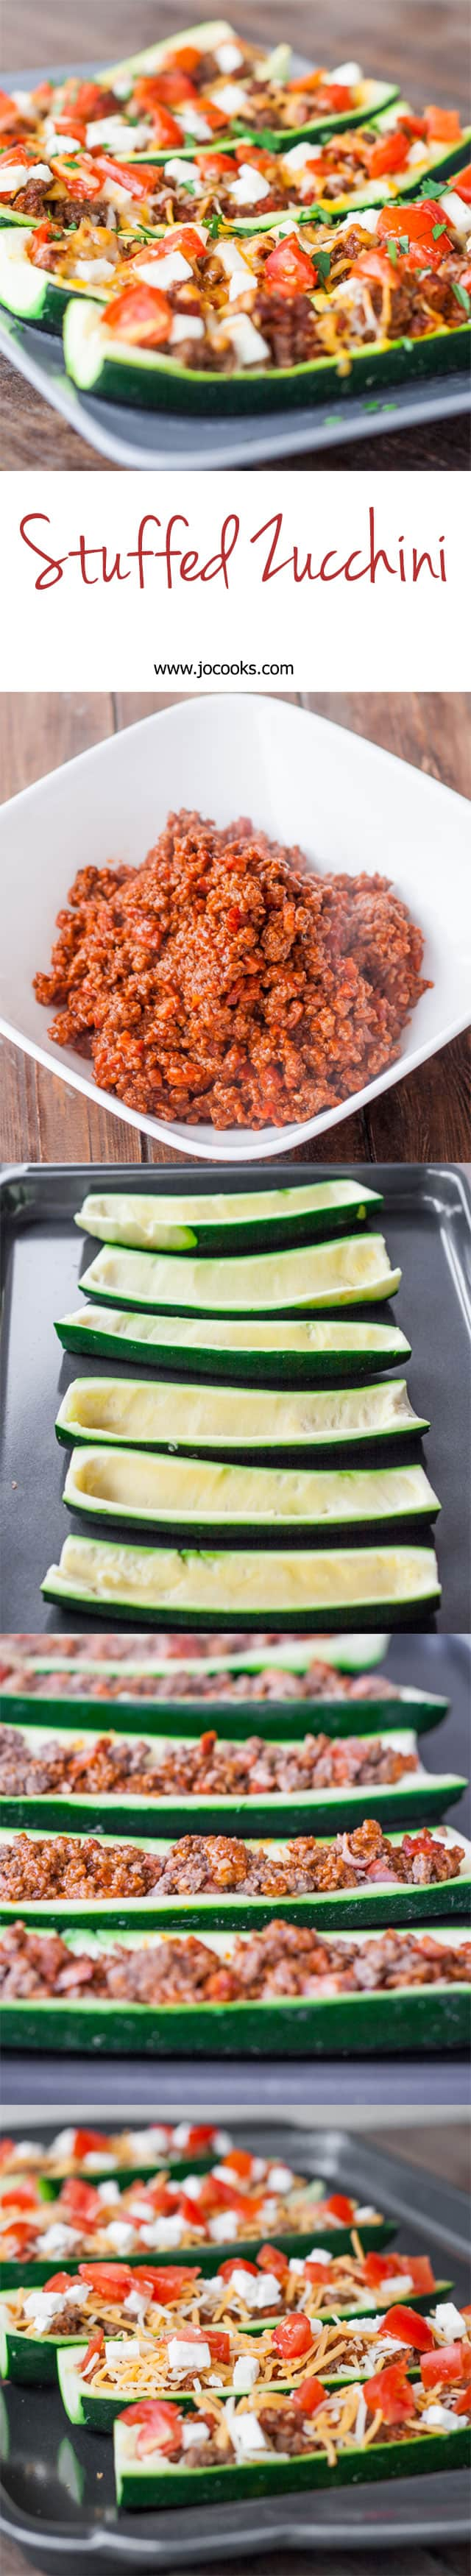 stuffed-zucchini-collage